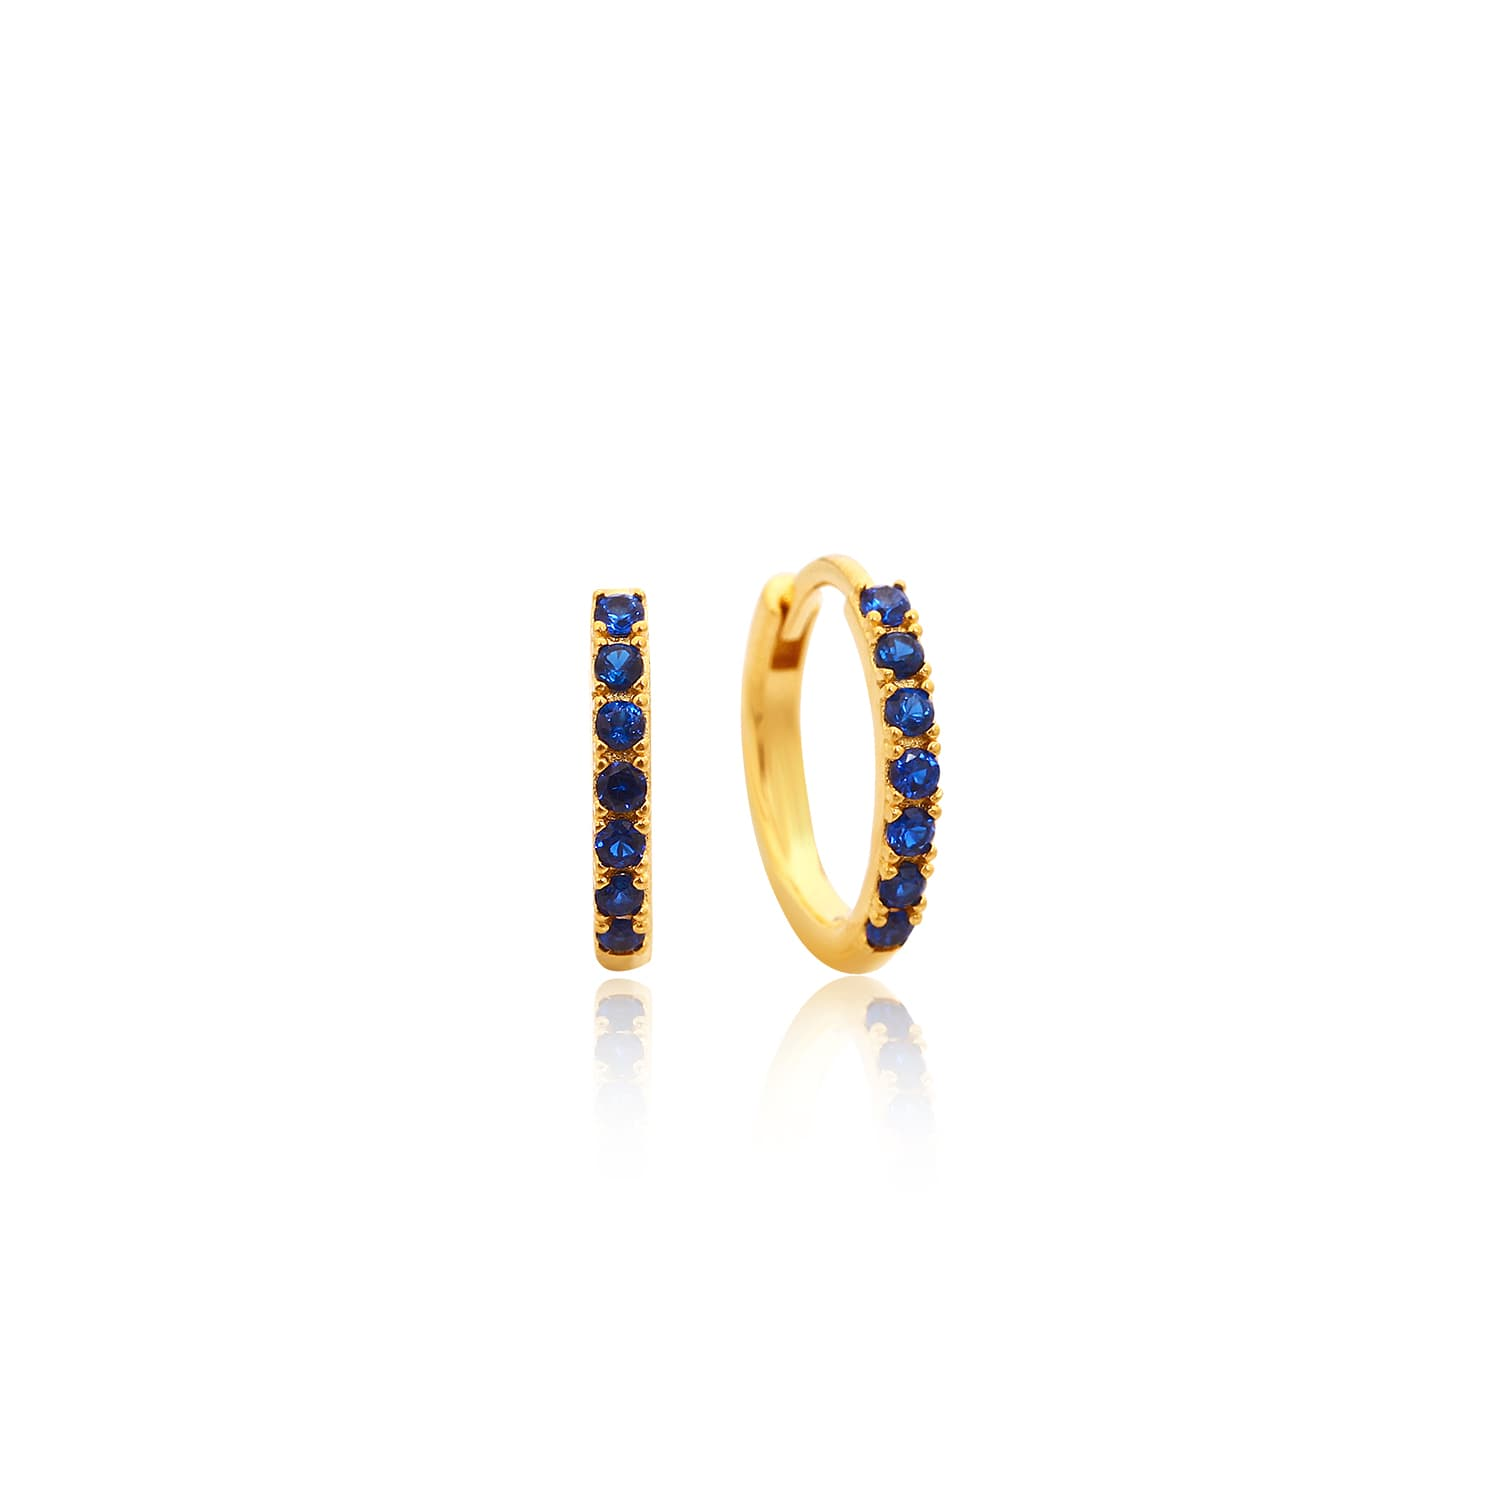 8MM CHARM RING EARRINGS DARK BLUE